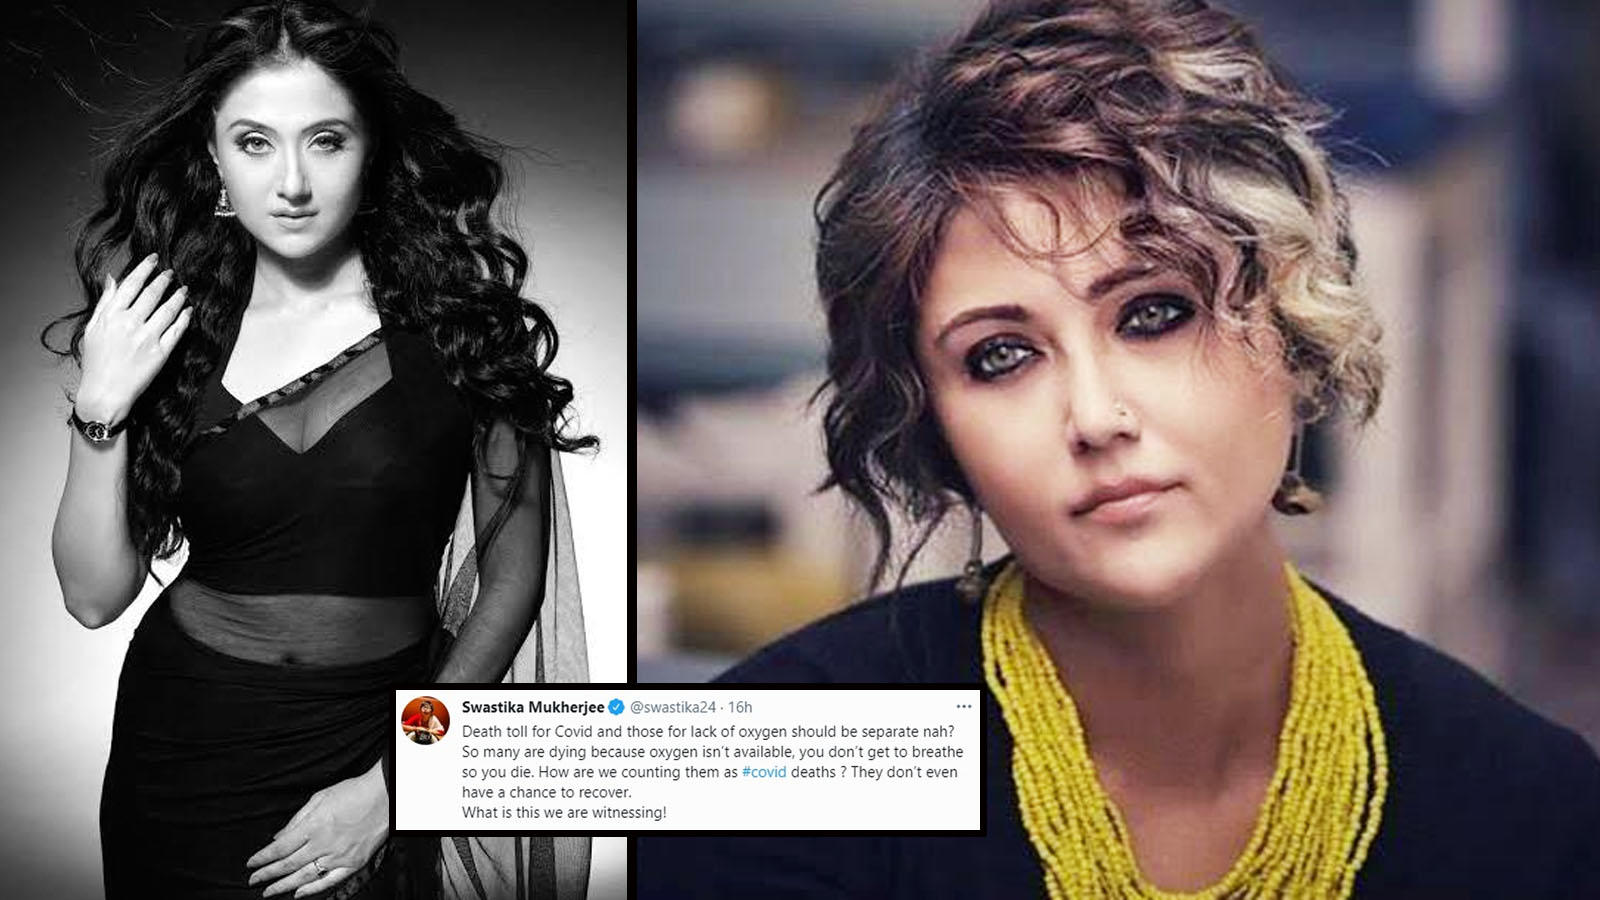 Swastika Mukherjee: COVID-19 deaths and those due to lack of oxygen should be counted separately   Hindi Movie News – Bollywood – Times of India